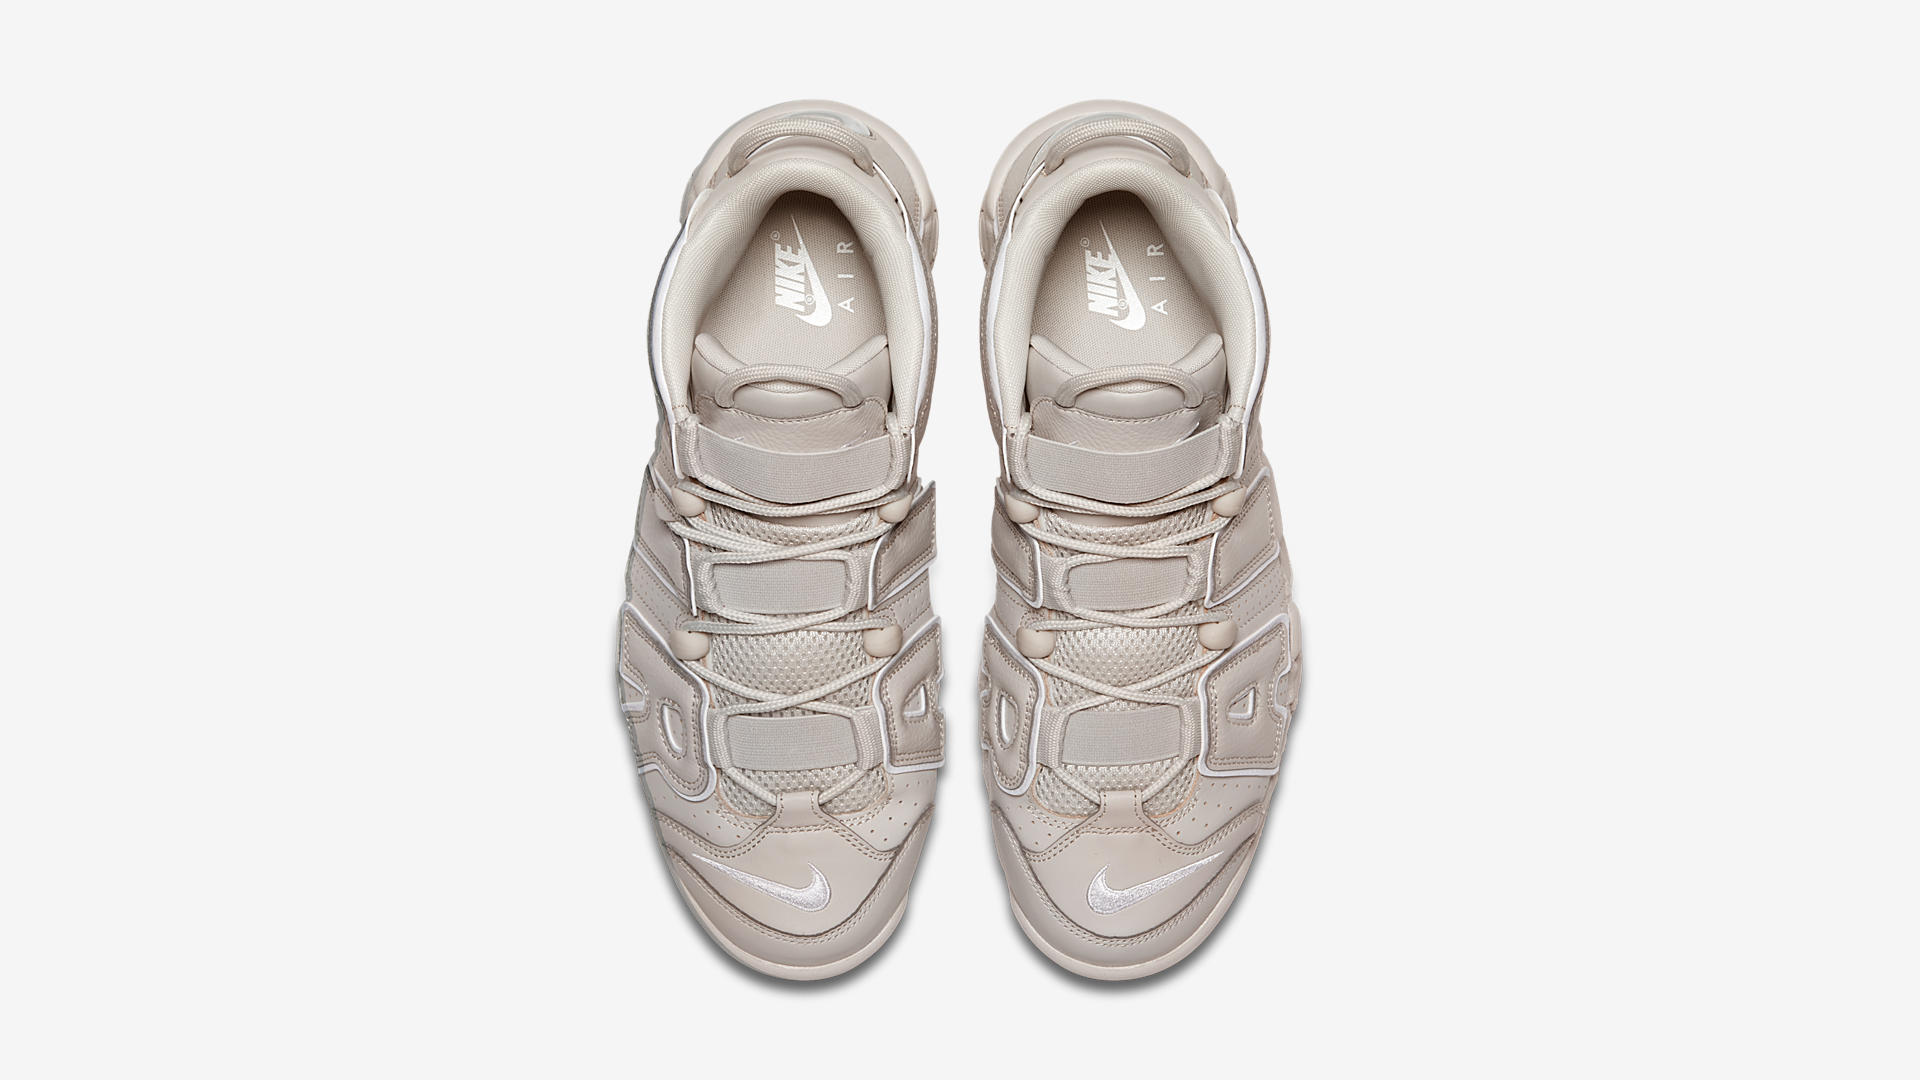 921948 001 Nike Air More Uptempo Light Bone 3